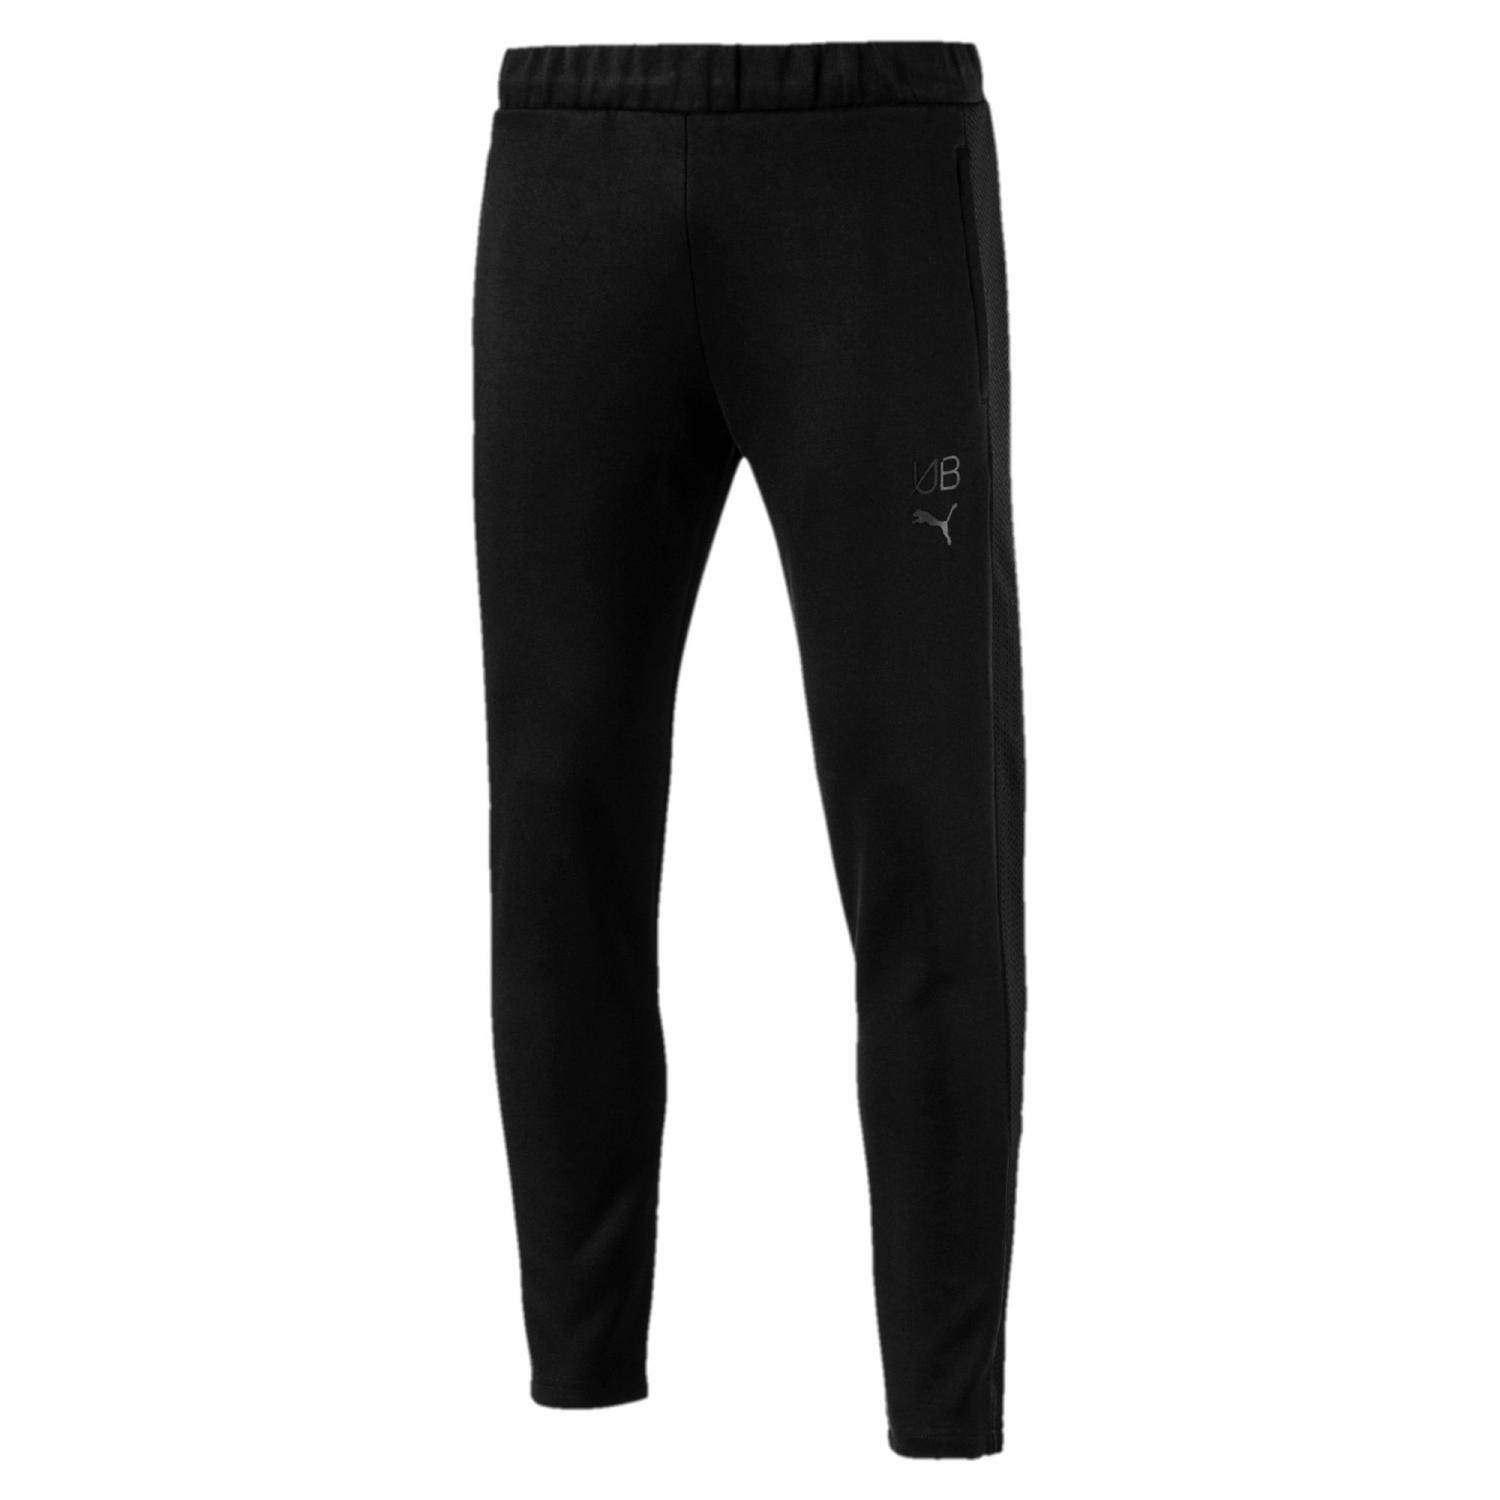 Puma Pant Ub Pants Cotton   Usain Bolt